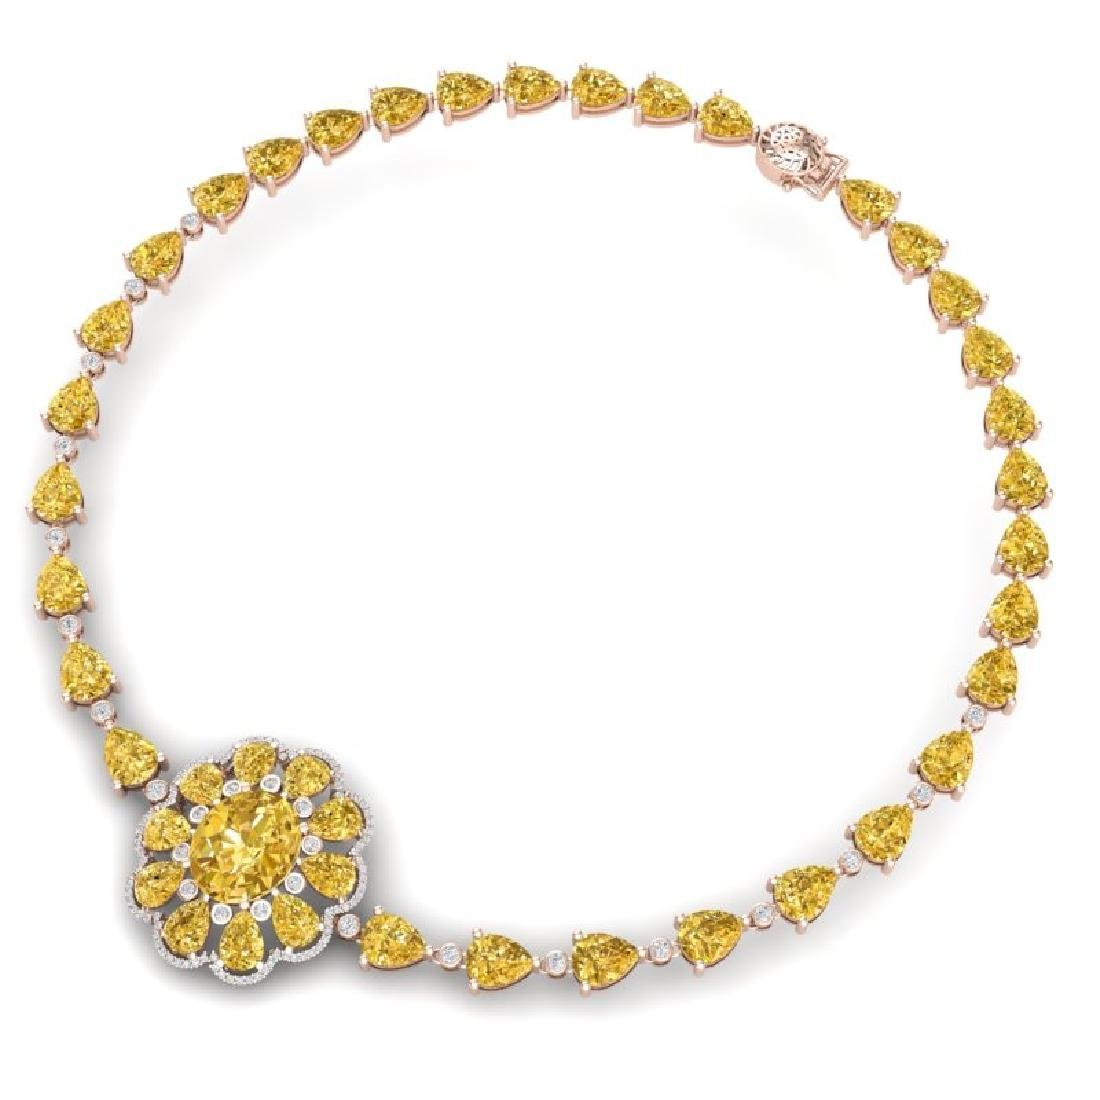 72.38 CTW Royalty Canary Citrine & VS Diamond Necklace - 3